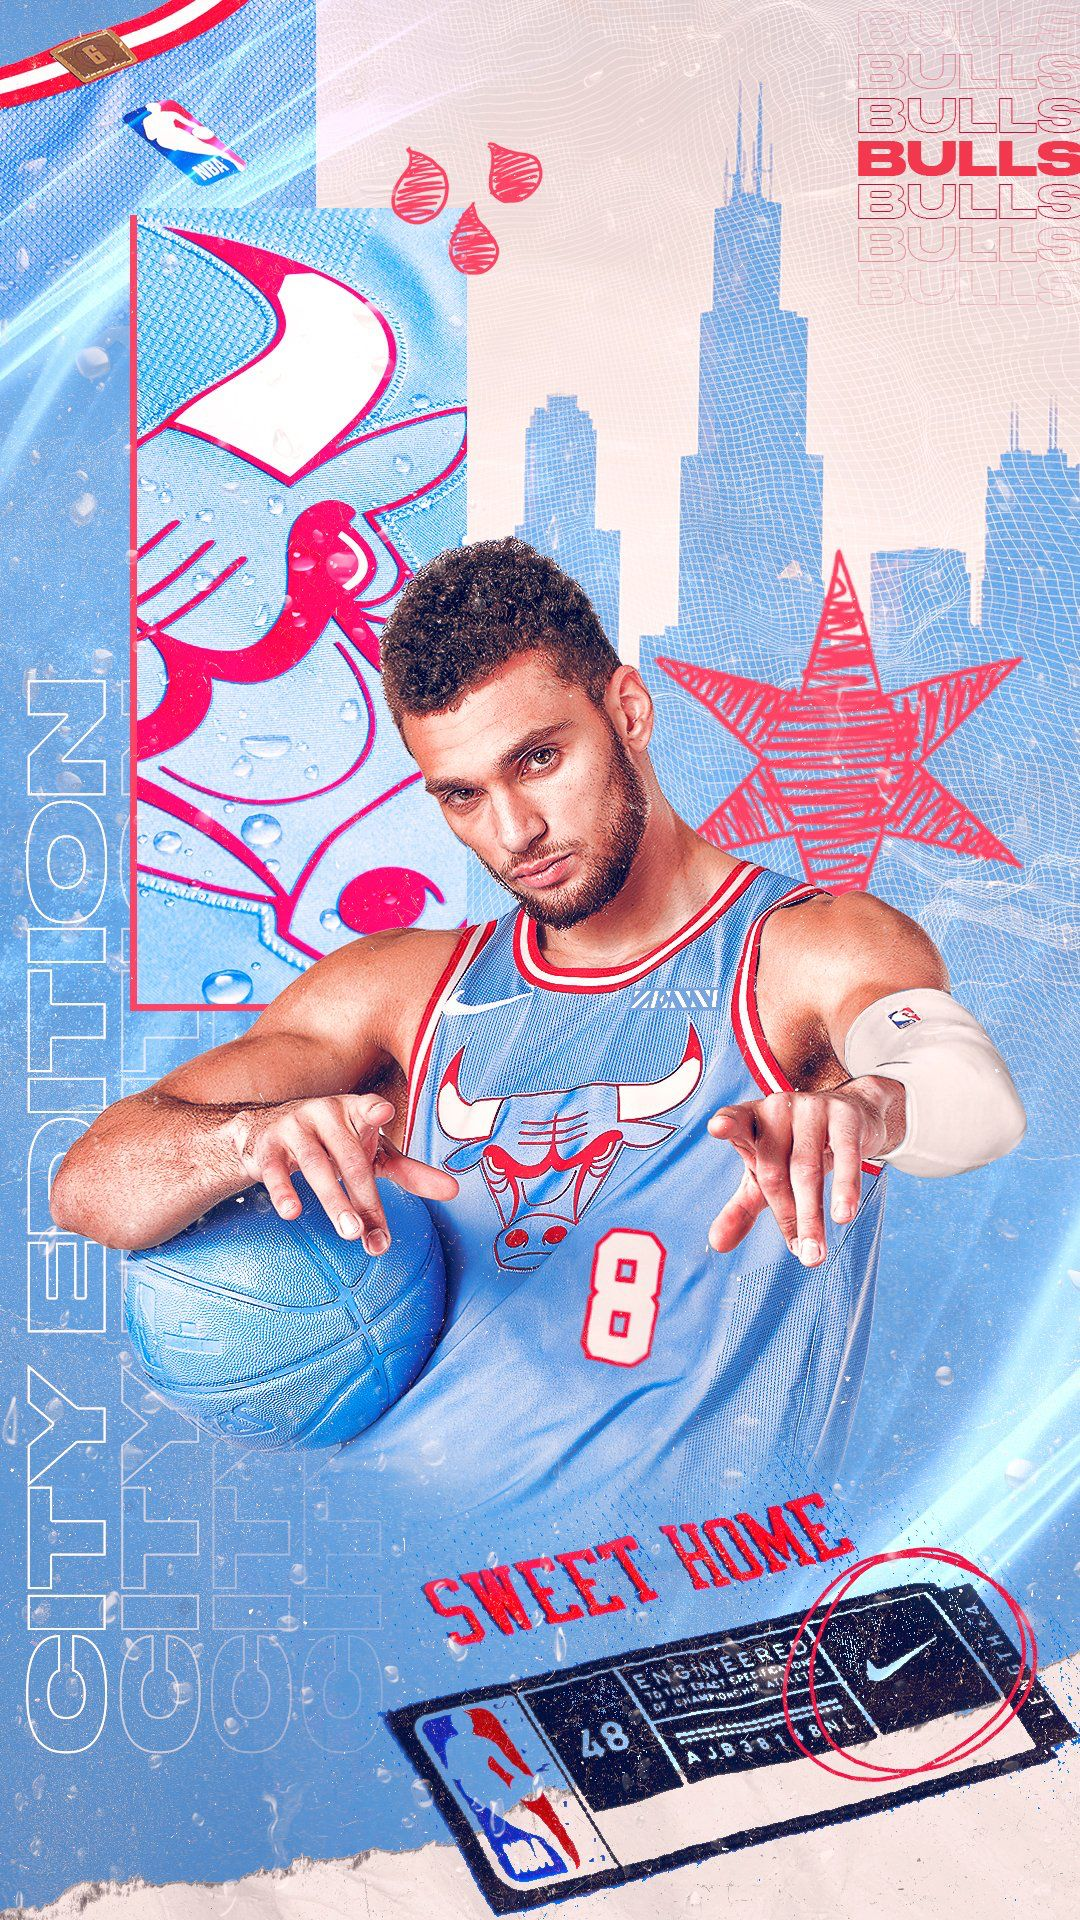 Pin By Annie On Chicago Cubs Chicago Bulls Basketball Chicago Bulls Sports Images